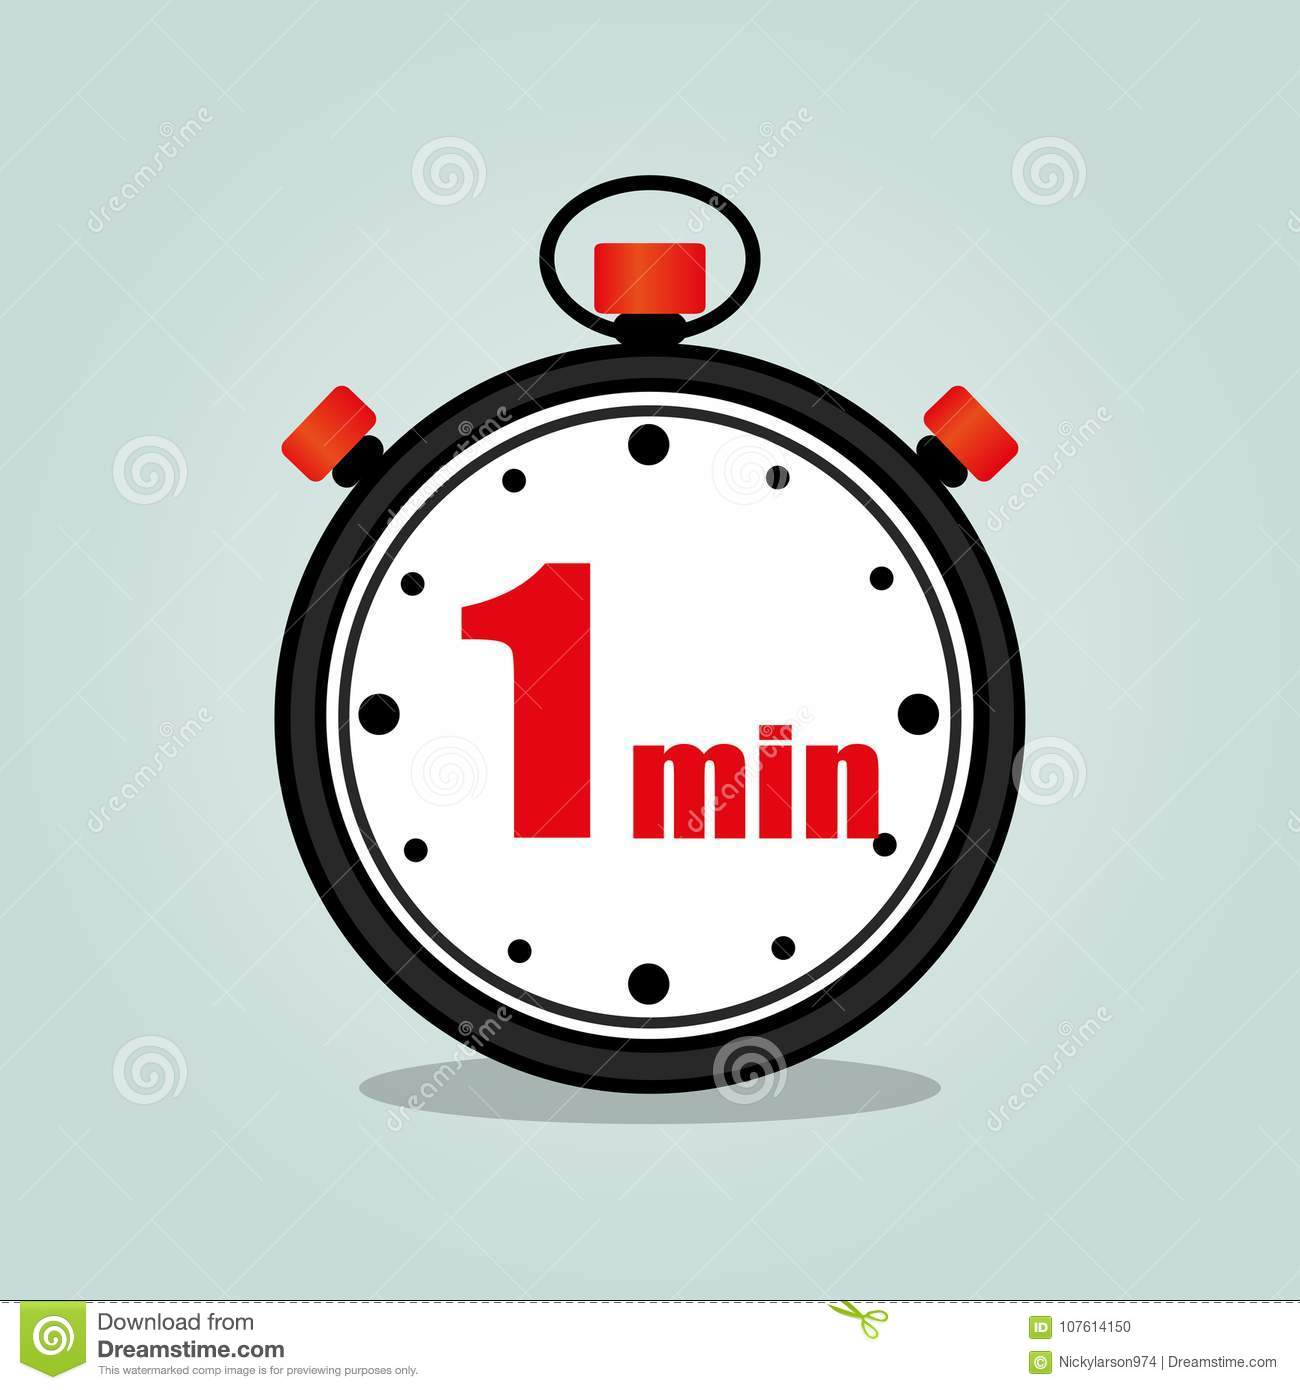 One Minute Stopwatch Isolated Stock Vector - Illustration of